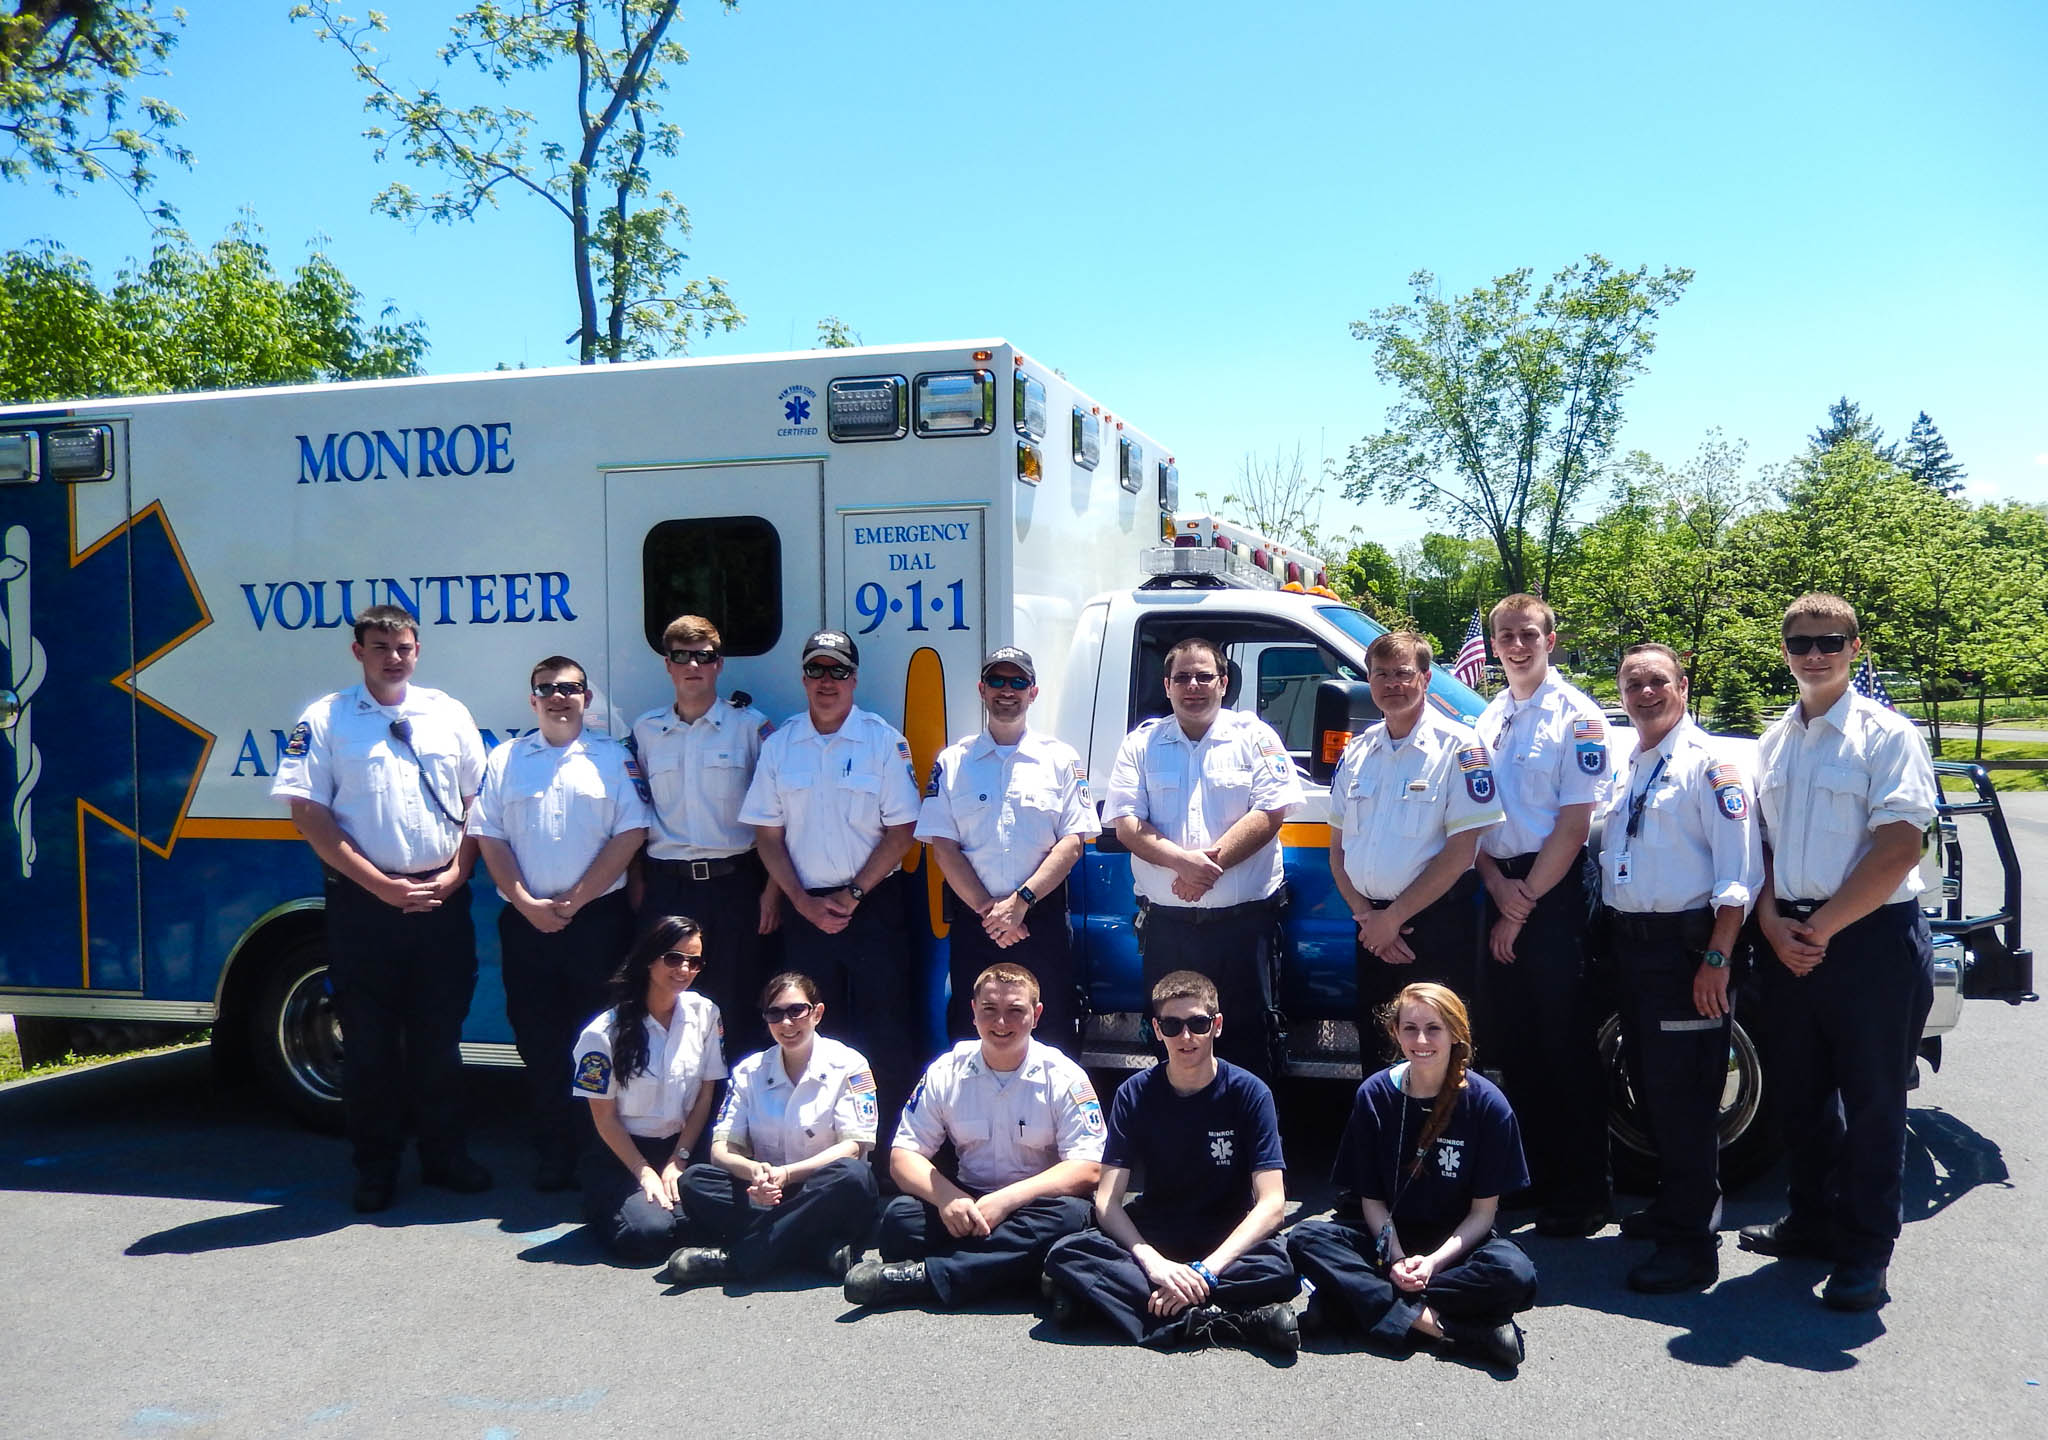 Cpr monroe volunteer ambulance aha hs first aid certification 1betcityfo Gallery